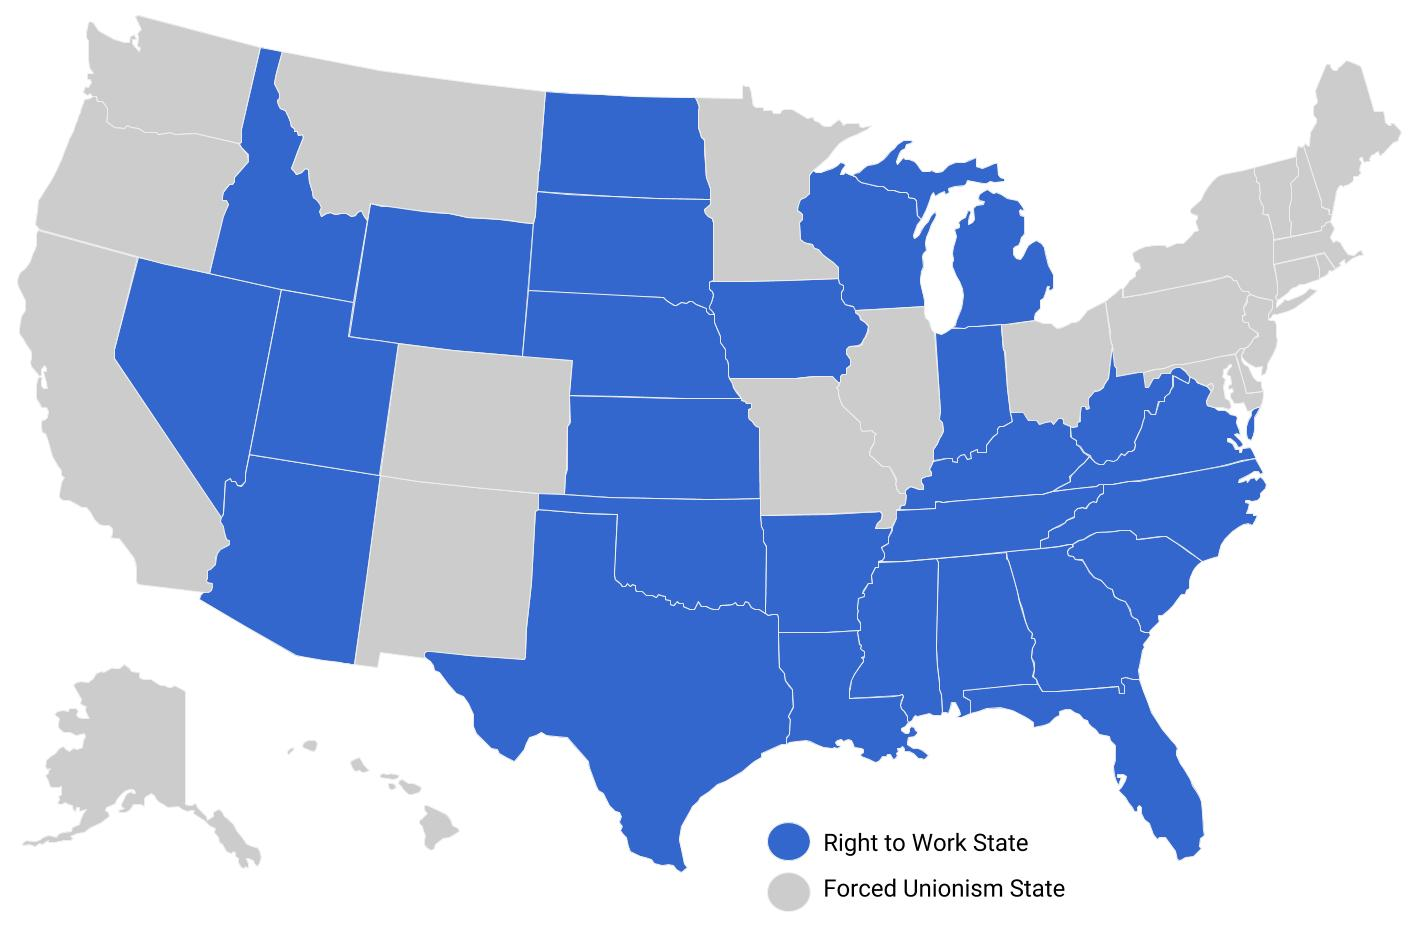 Right To Work States Vs Union States Map.National Right To Work Foundation Right To Work States